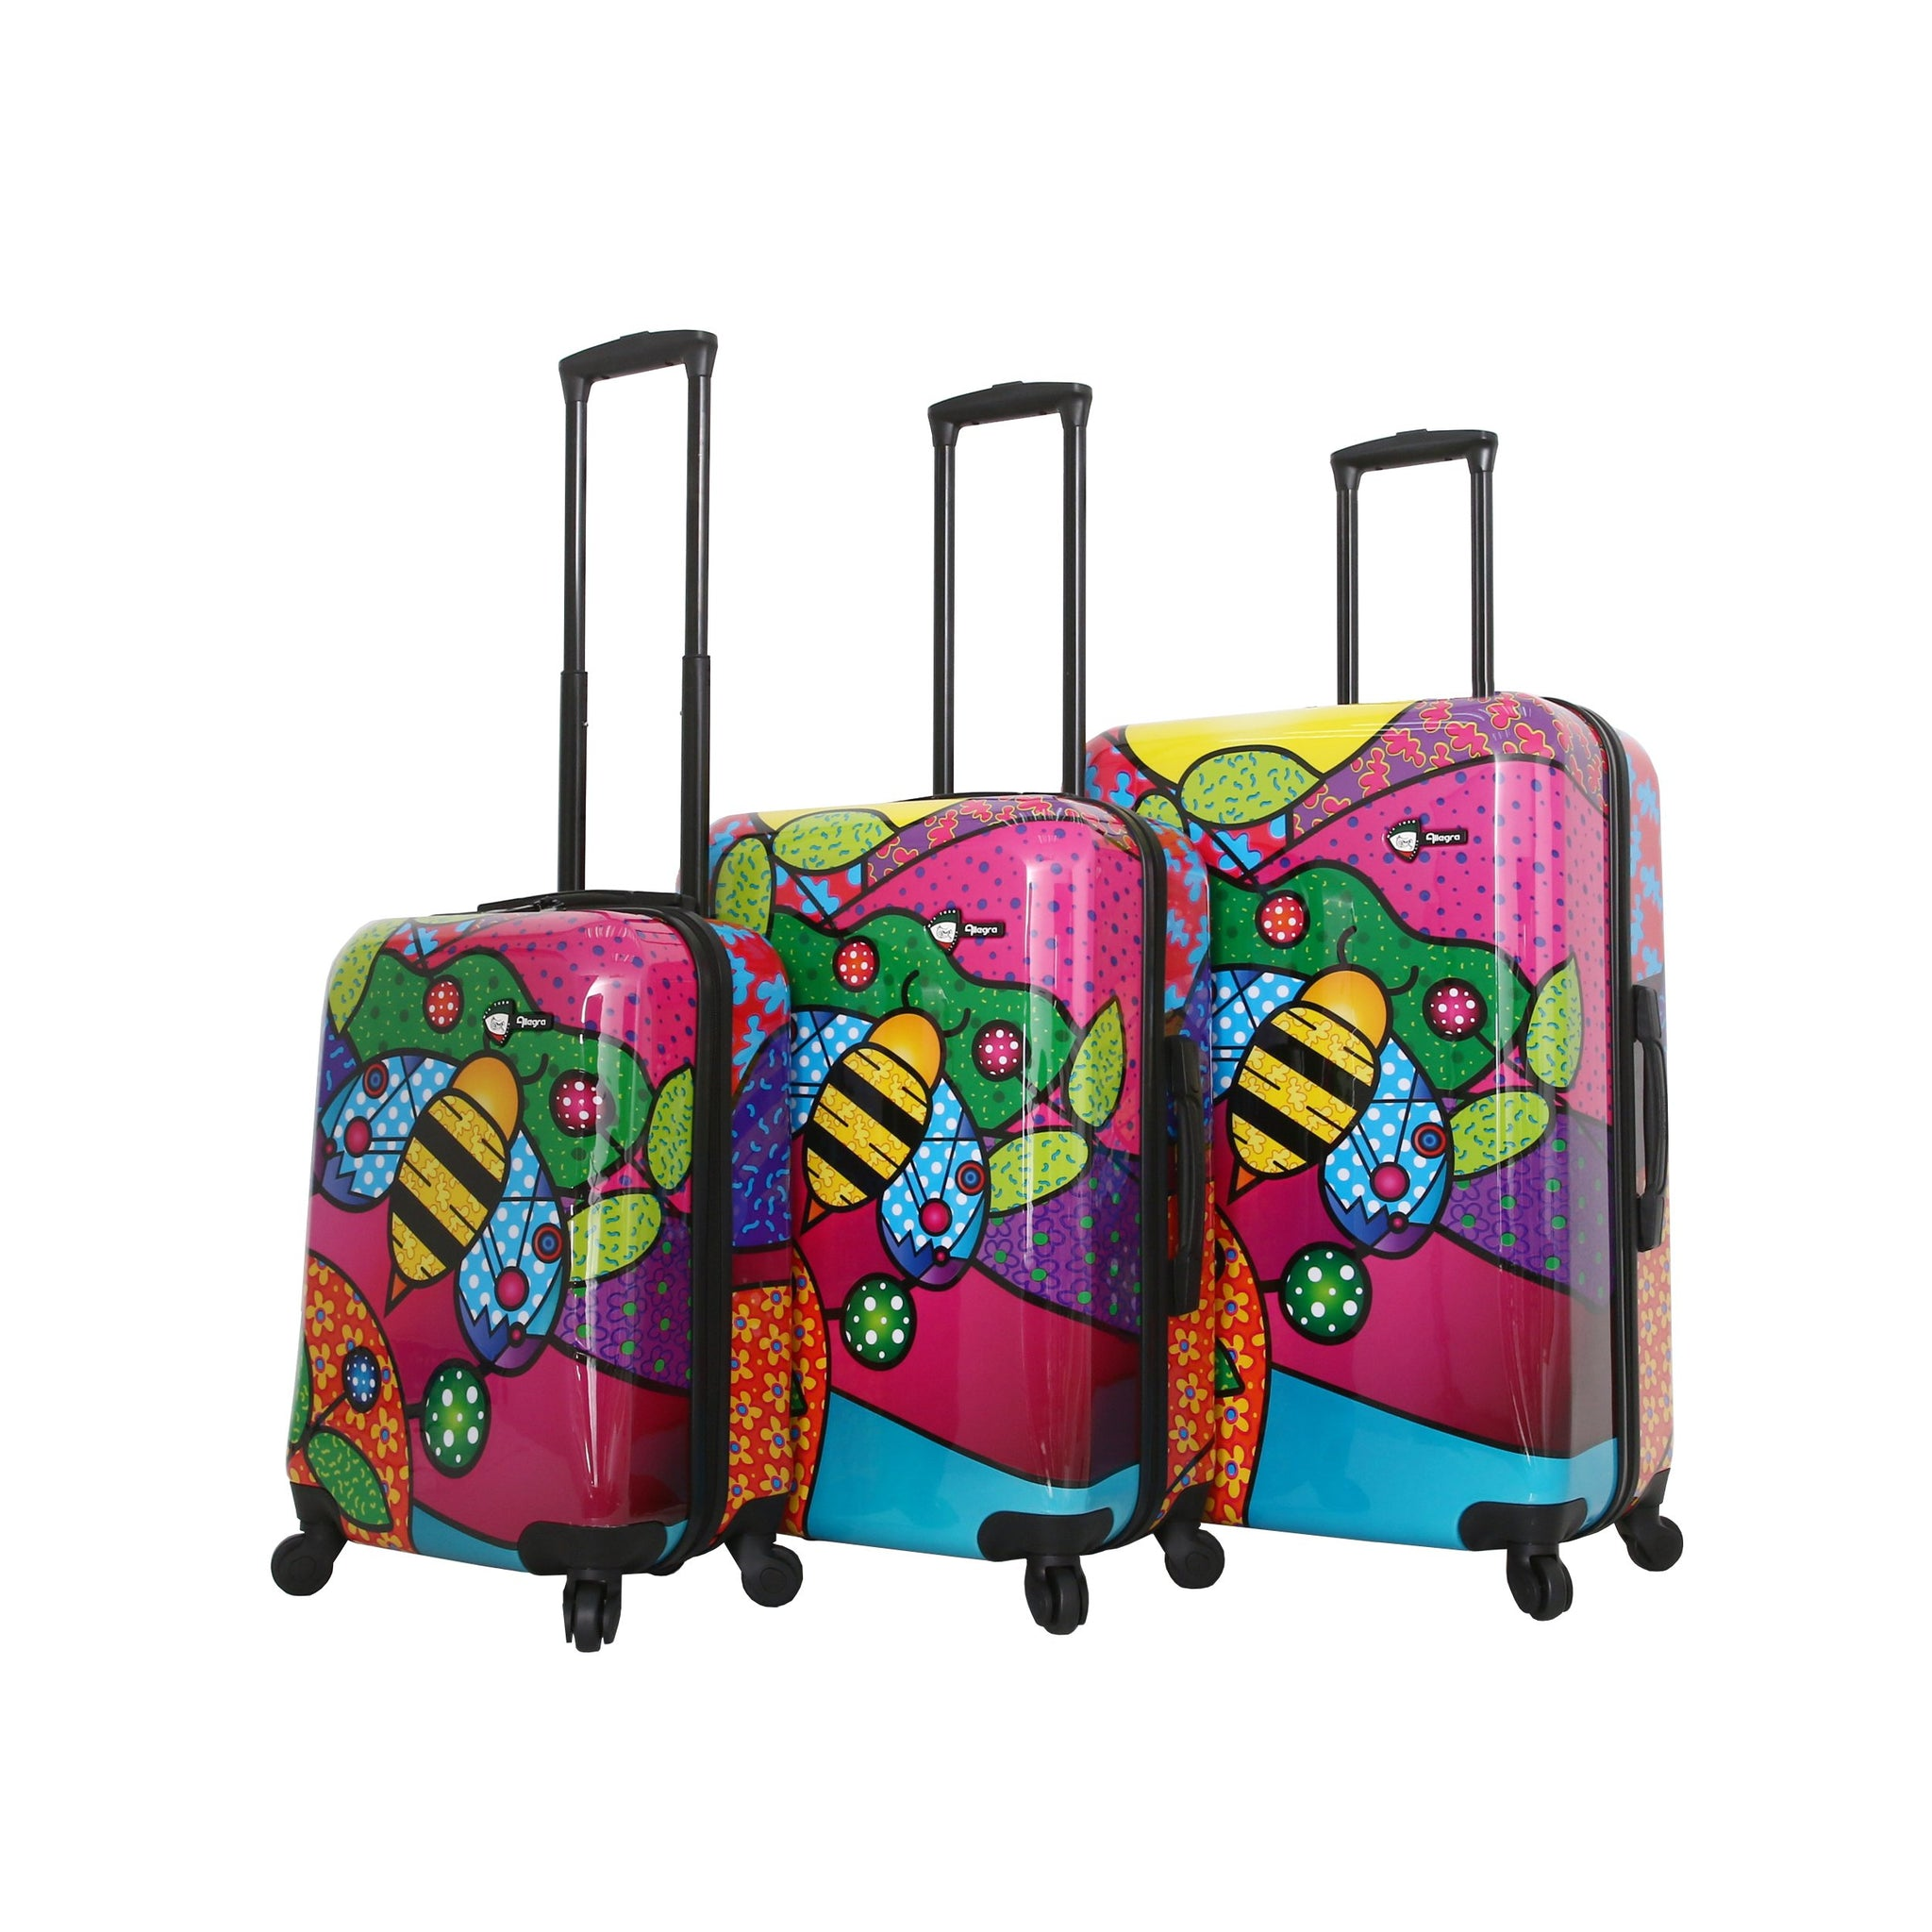 Allegra Pop Bee 3PC Set